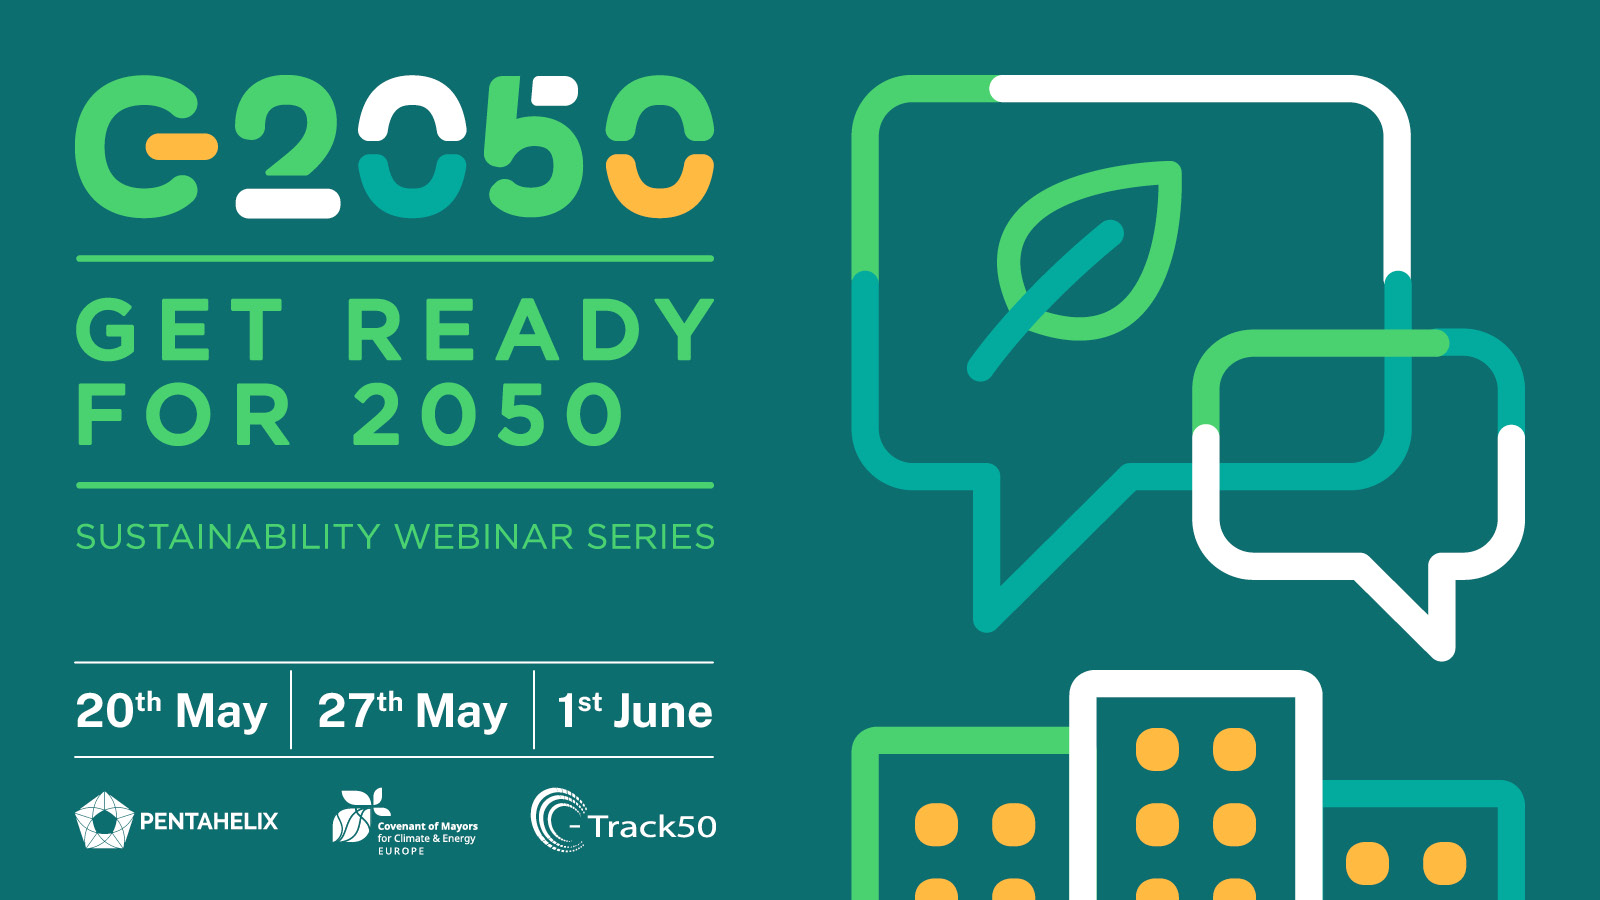 GET READY FOR 2050: the upcoming event series you don't want to miss